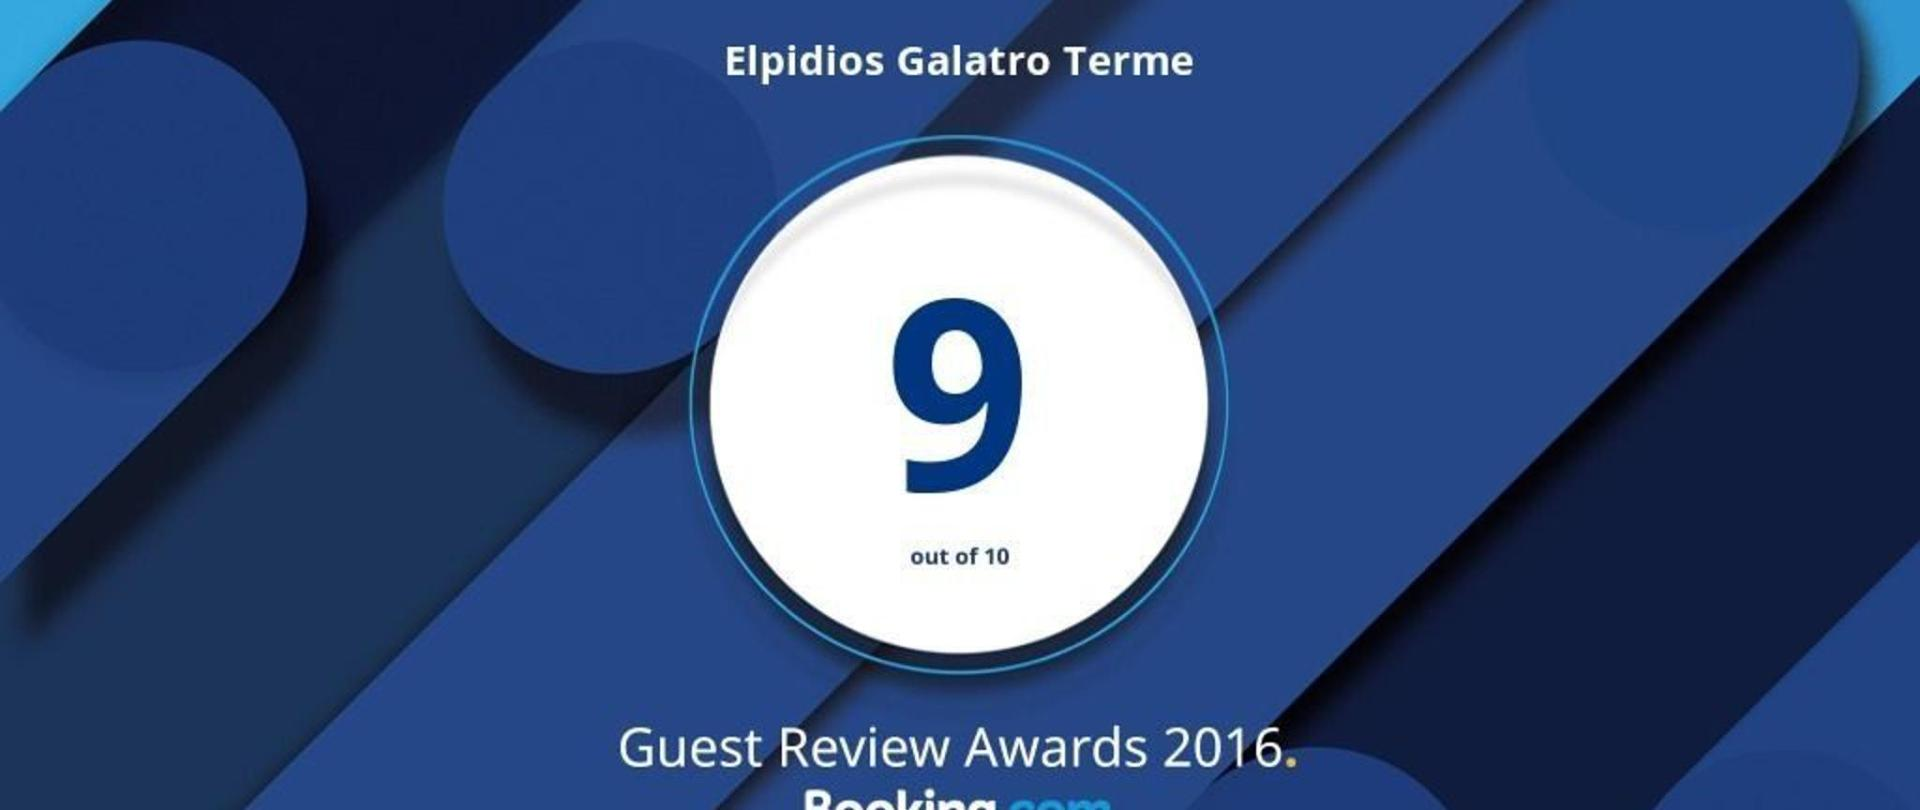 guest-review-awards-2016-1.jpg